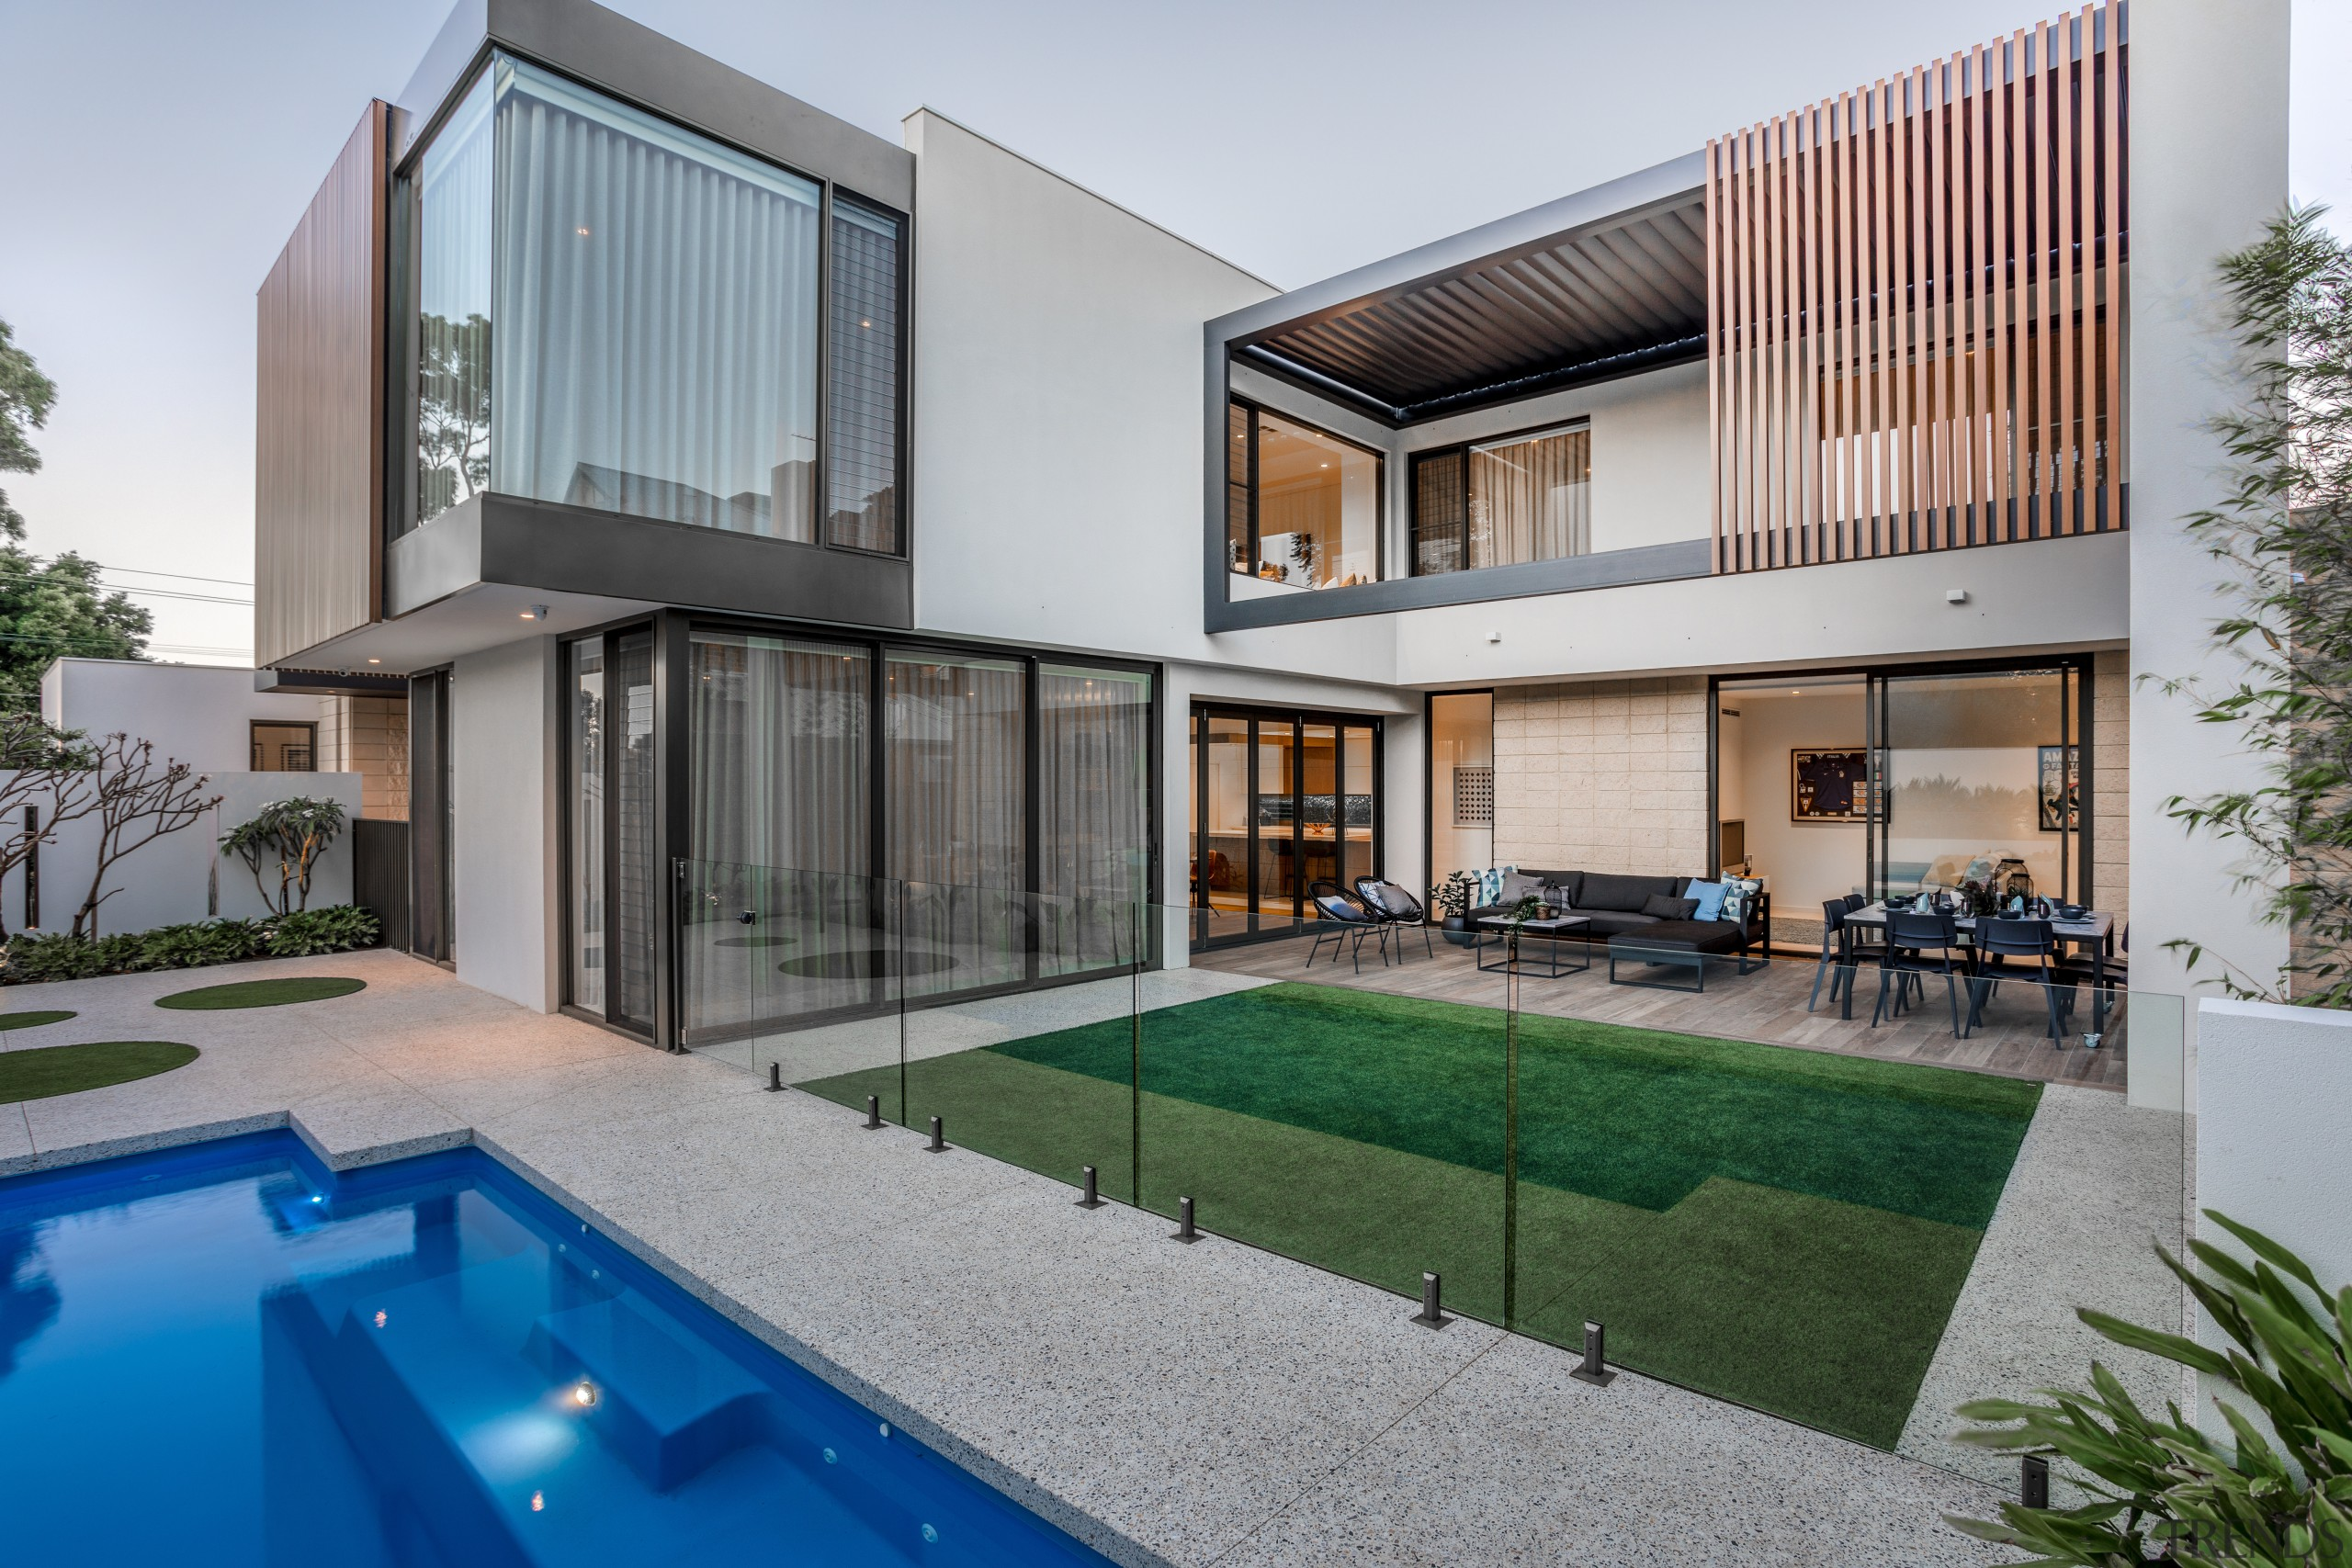 The strategic placement of aluminium wood-look battens on apartment, architecture, backyard, building, condominium, courtyard, estate, facade, home, house, interior design, property, real estate, residential area, roof, room, swimming pool, villa, gray